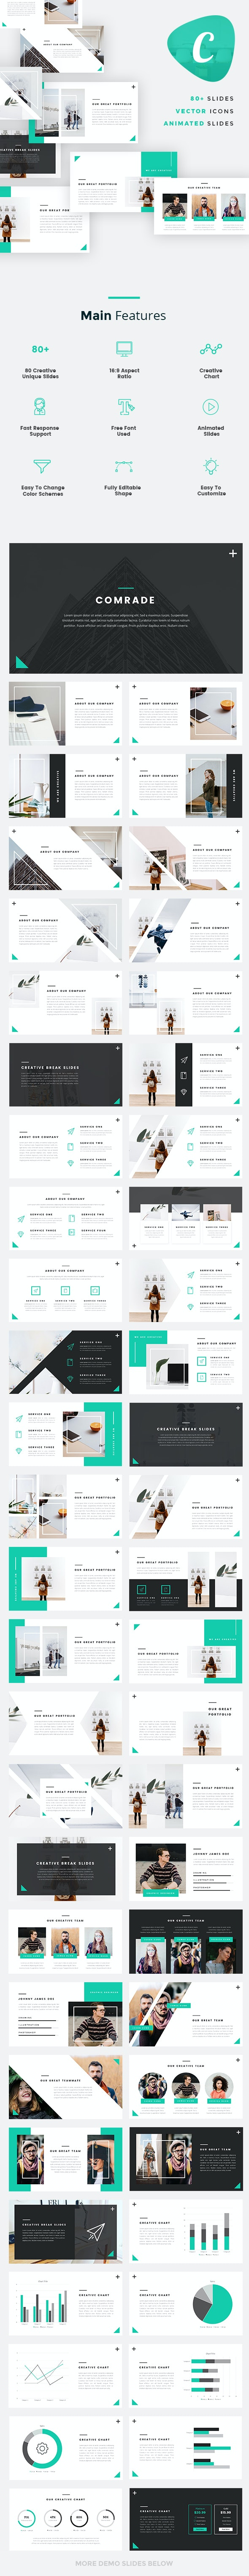 Comrade - Creative Keynote Template - Creative Keynote Templates